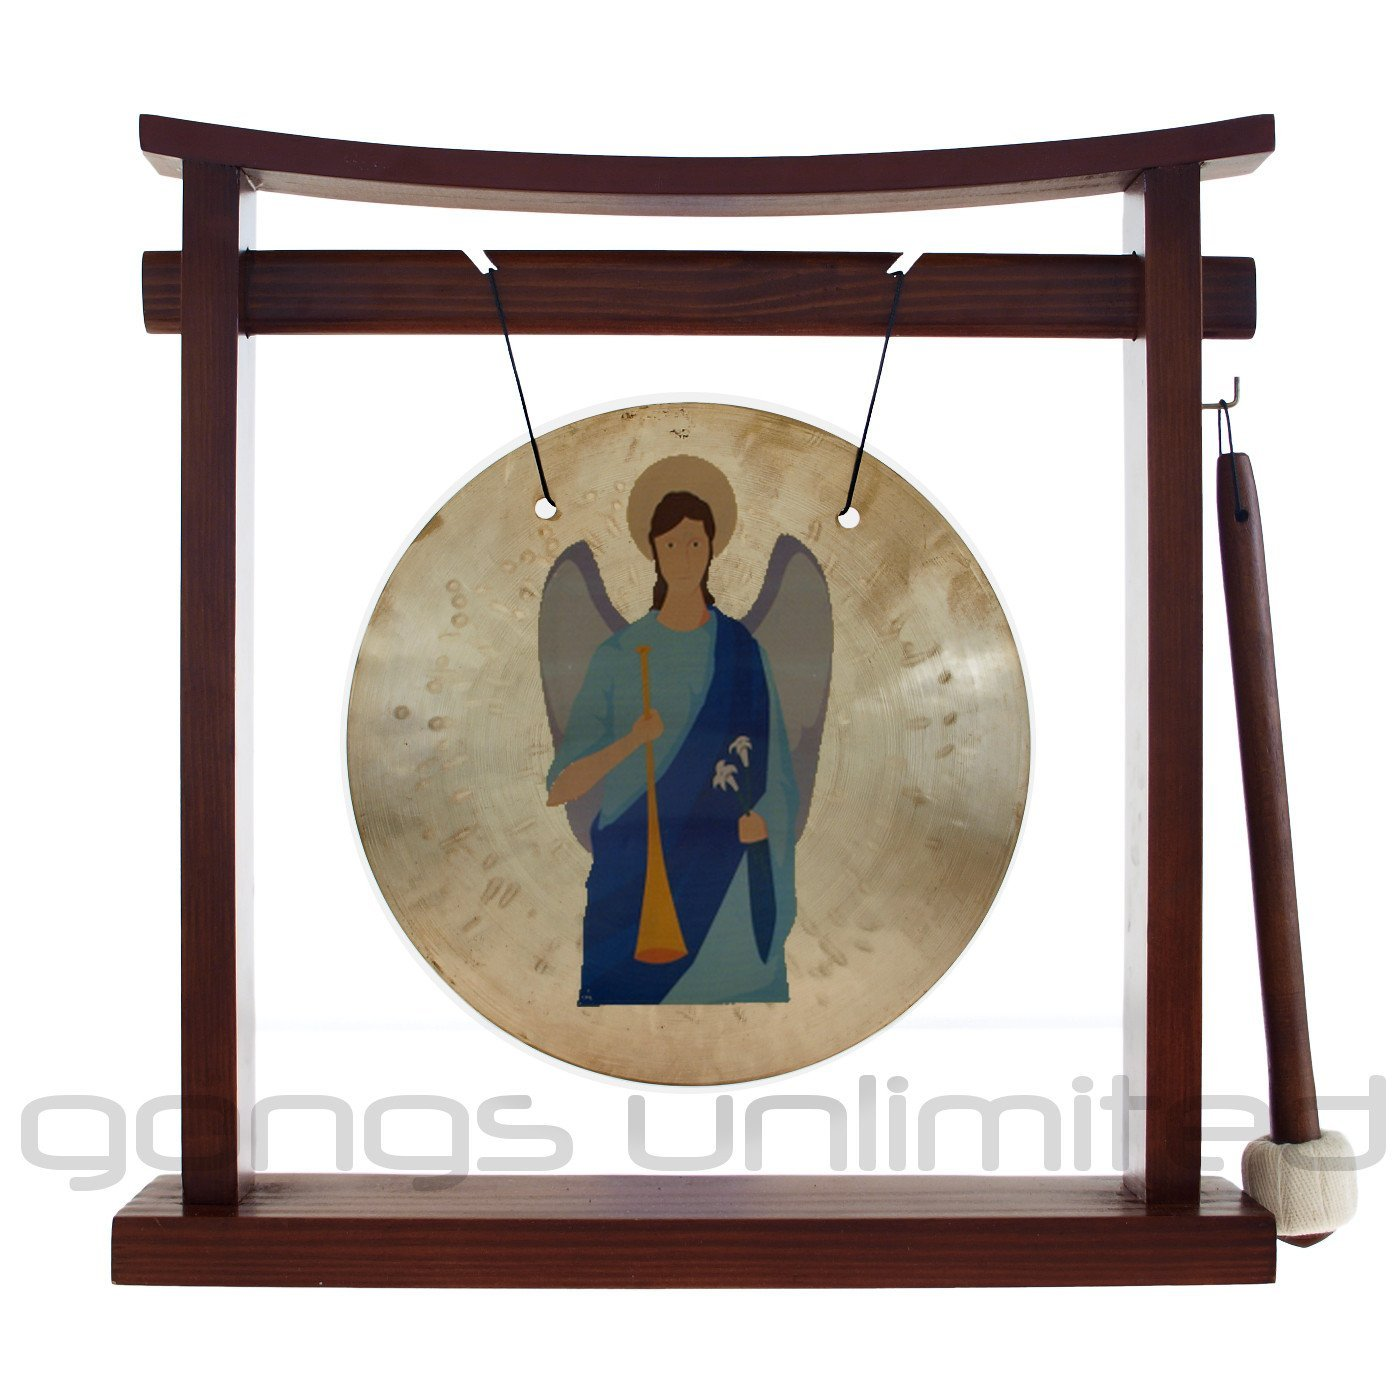 ArchAngel Gongs on Pretty Chill Gong Stands by Unlimited